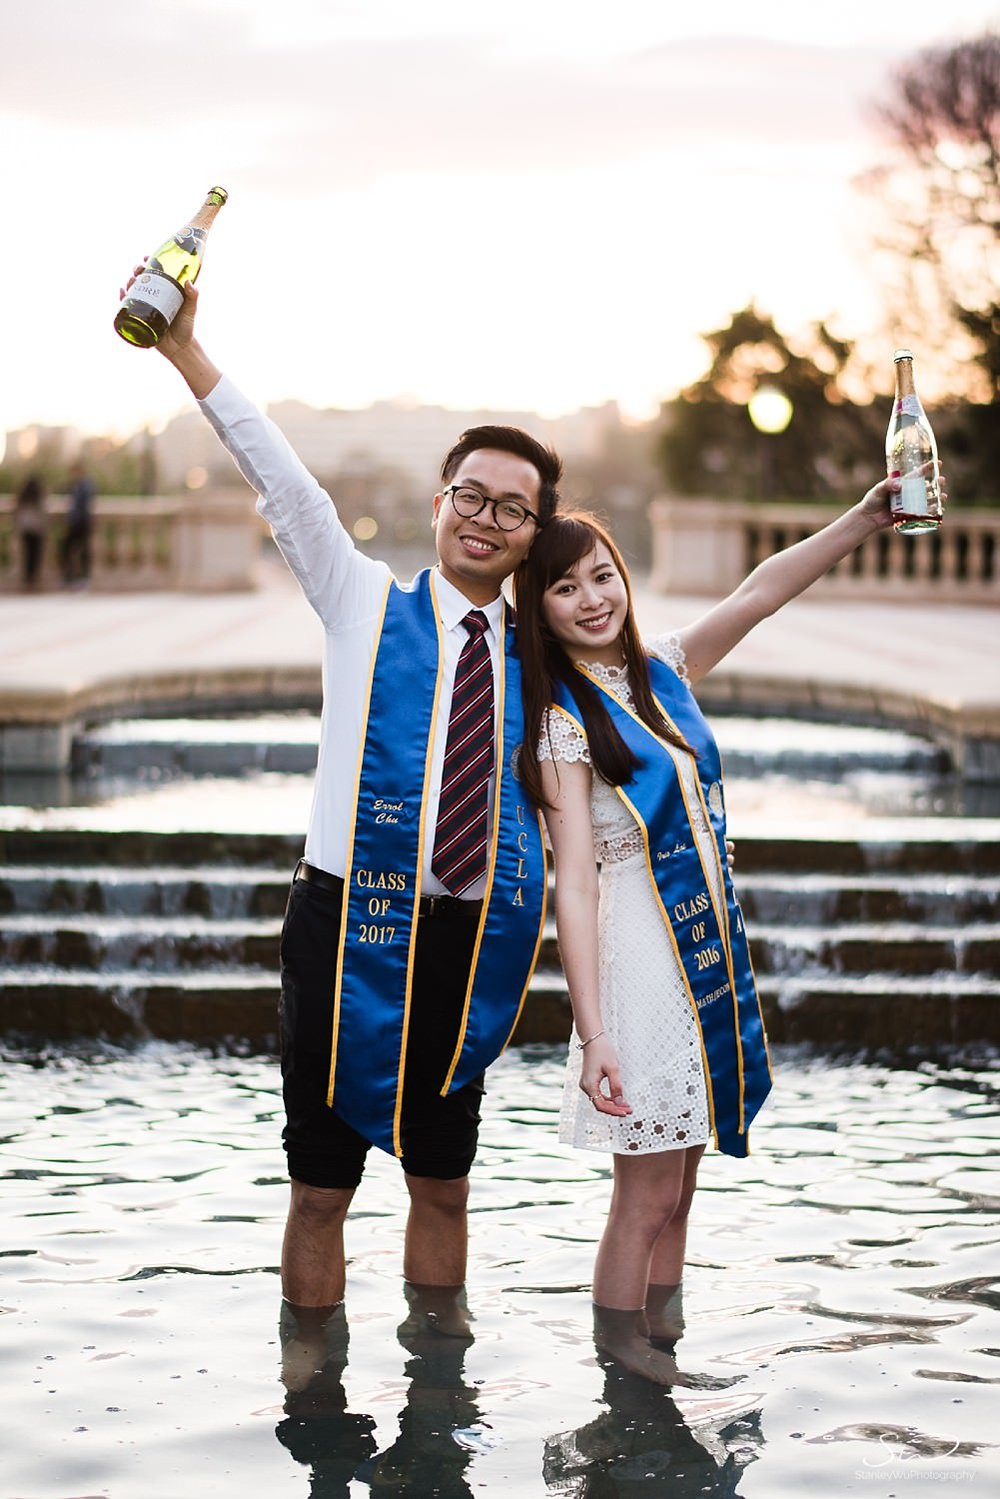 los-angeles-ucla-graduation-senior-portraits_0038.jpg